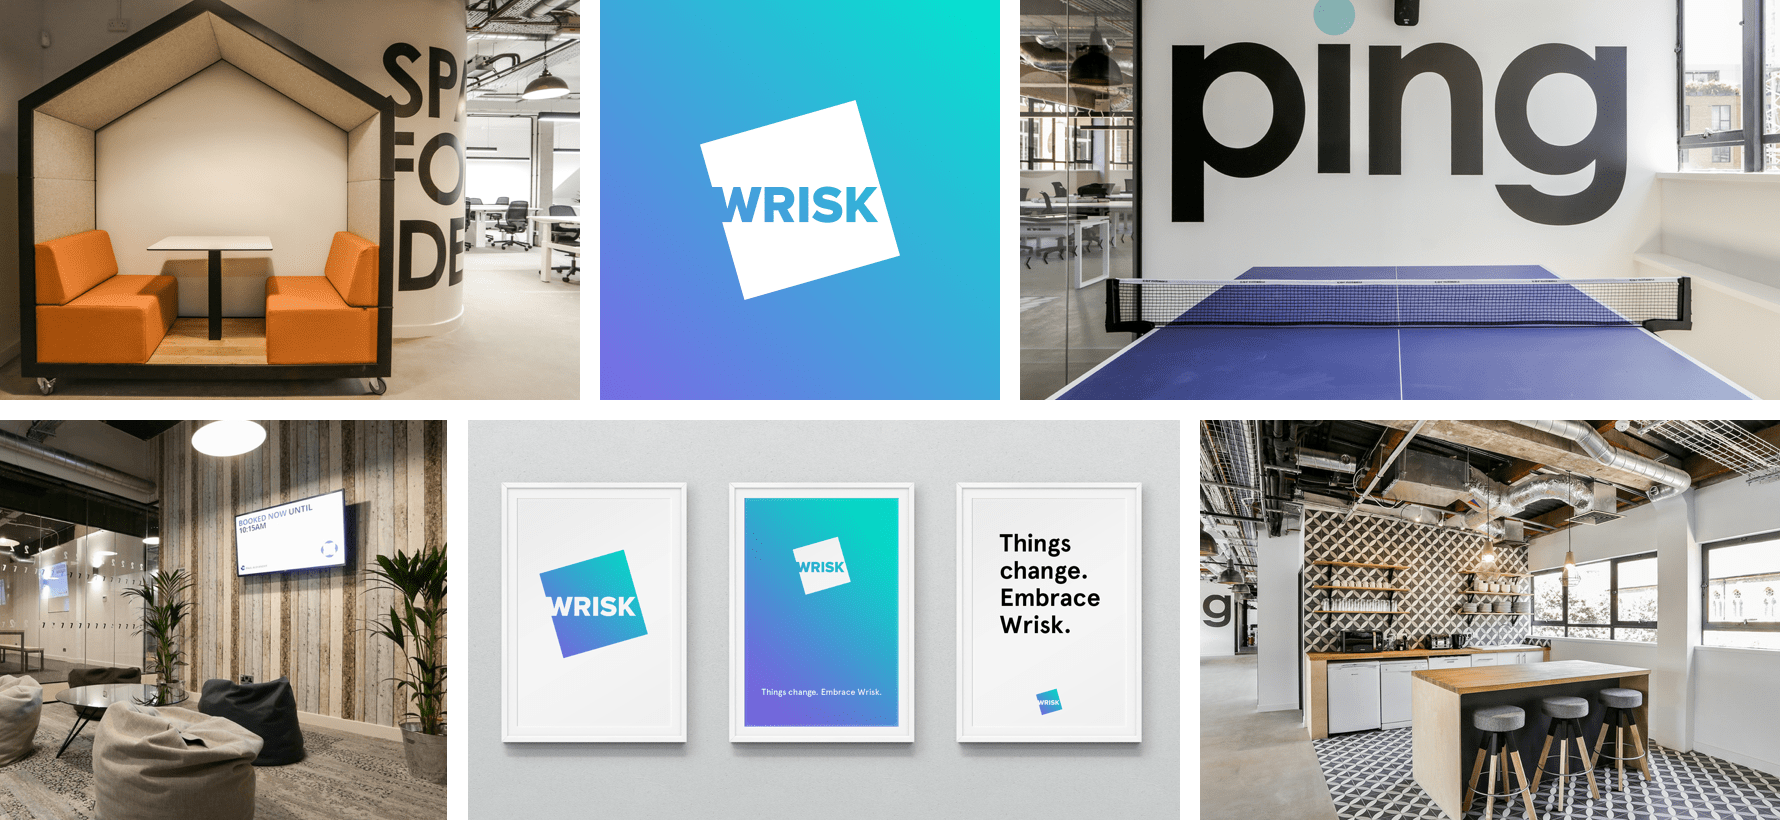 Image about the Wrisk office